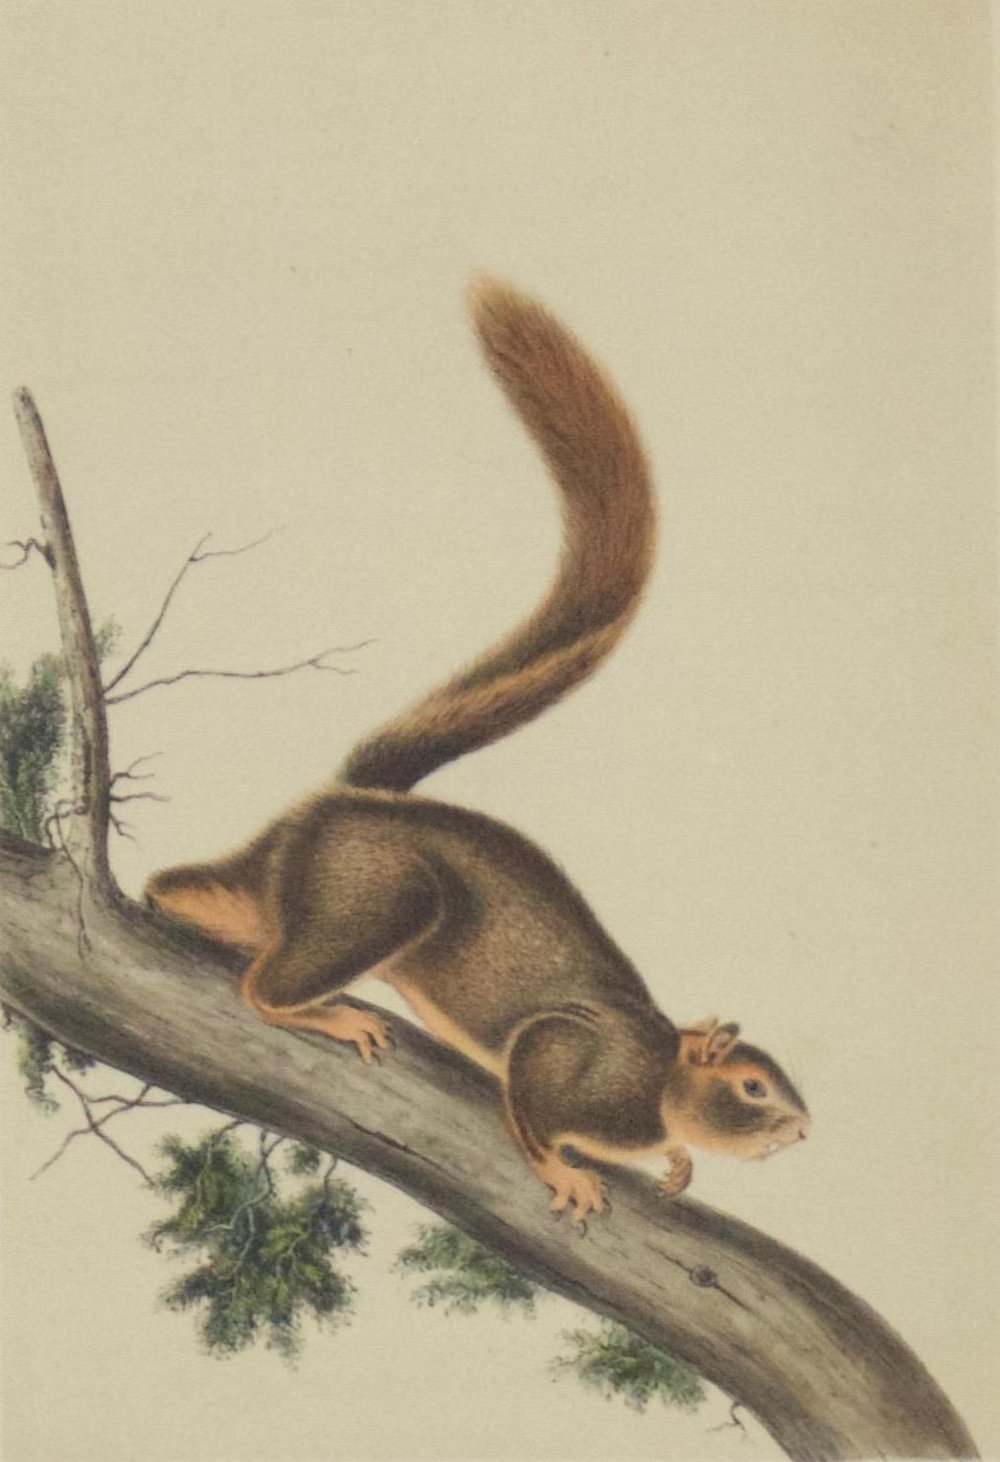 John James Audubon     Red Tailed Squirrel   On Stone by W.E. Hitchcock  Lith Printed and Cold by J.T. Bowen, Phila  Drawn from Nature by J.J. Audubon FRSFLS  Framed  BV0644